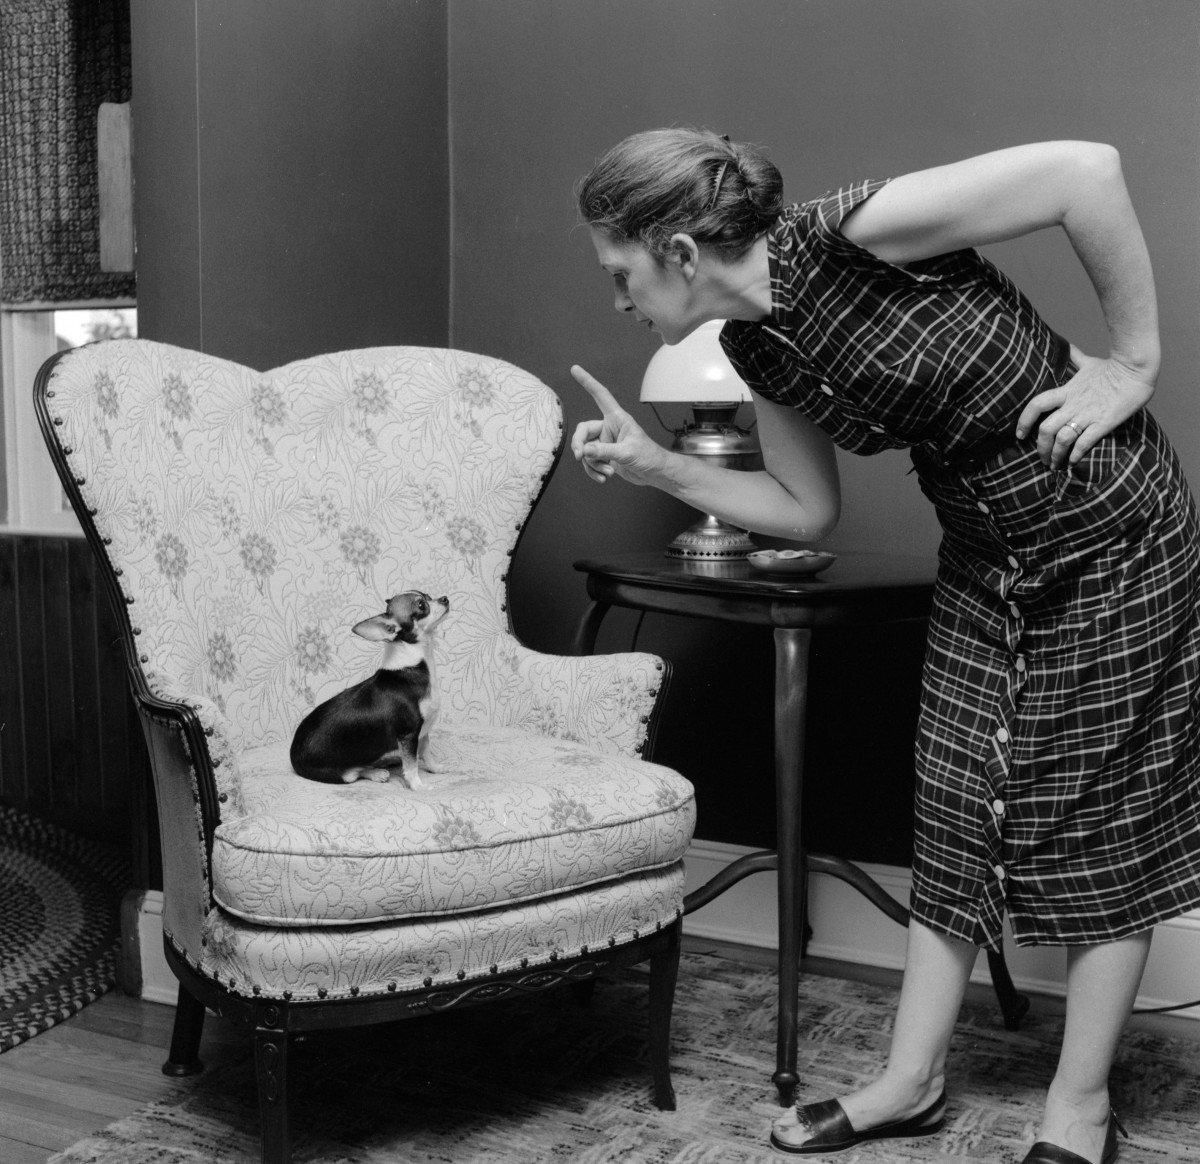 circa 1955: A woman teaches her pet chihuahua good manners with a stern reproof. (Photo by Three Lions/Getty Images)